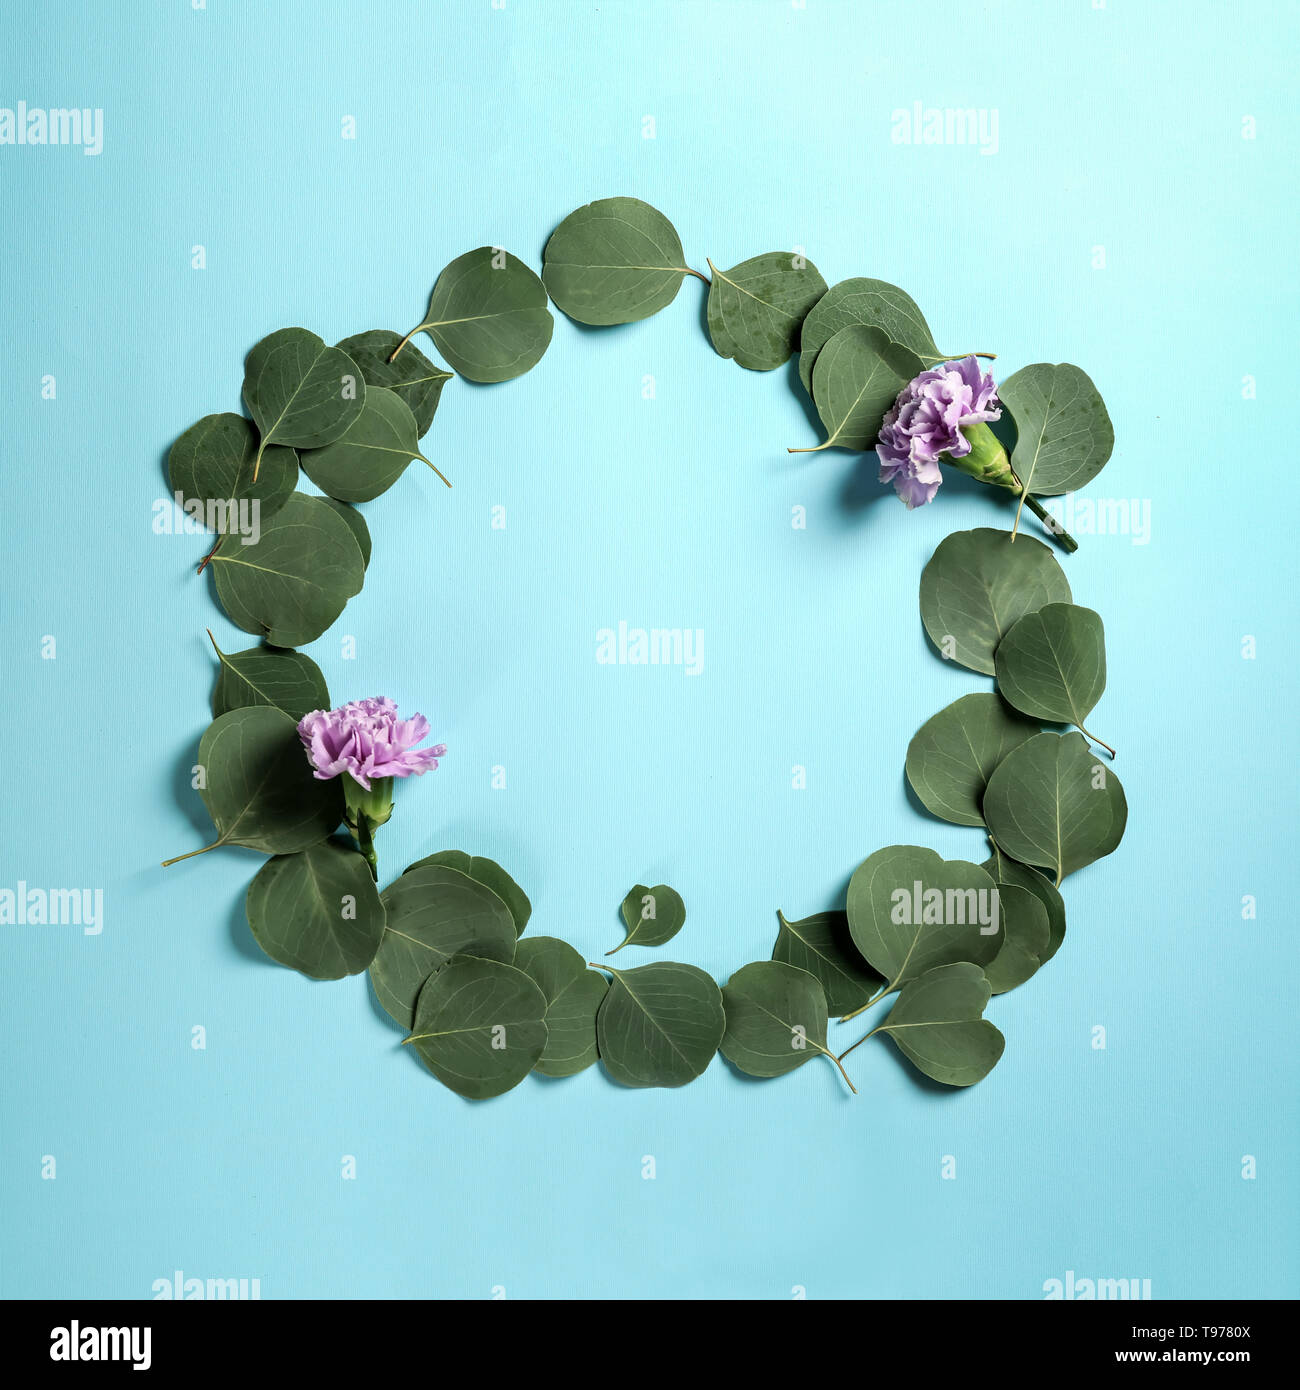 Frame made of green eucalyptus leaves and flowers on color background - Stock Image